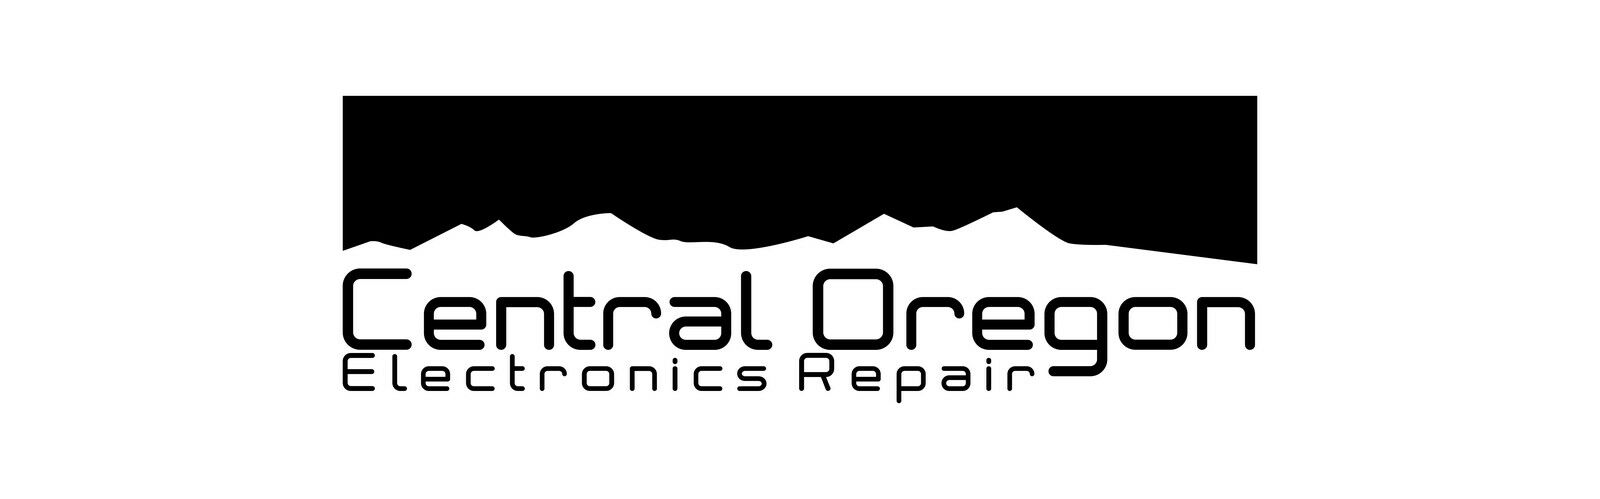 Central Oregon Electronics Repair